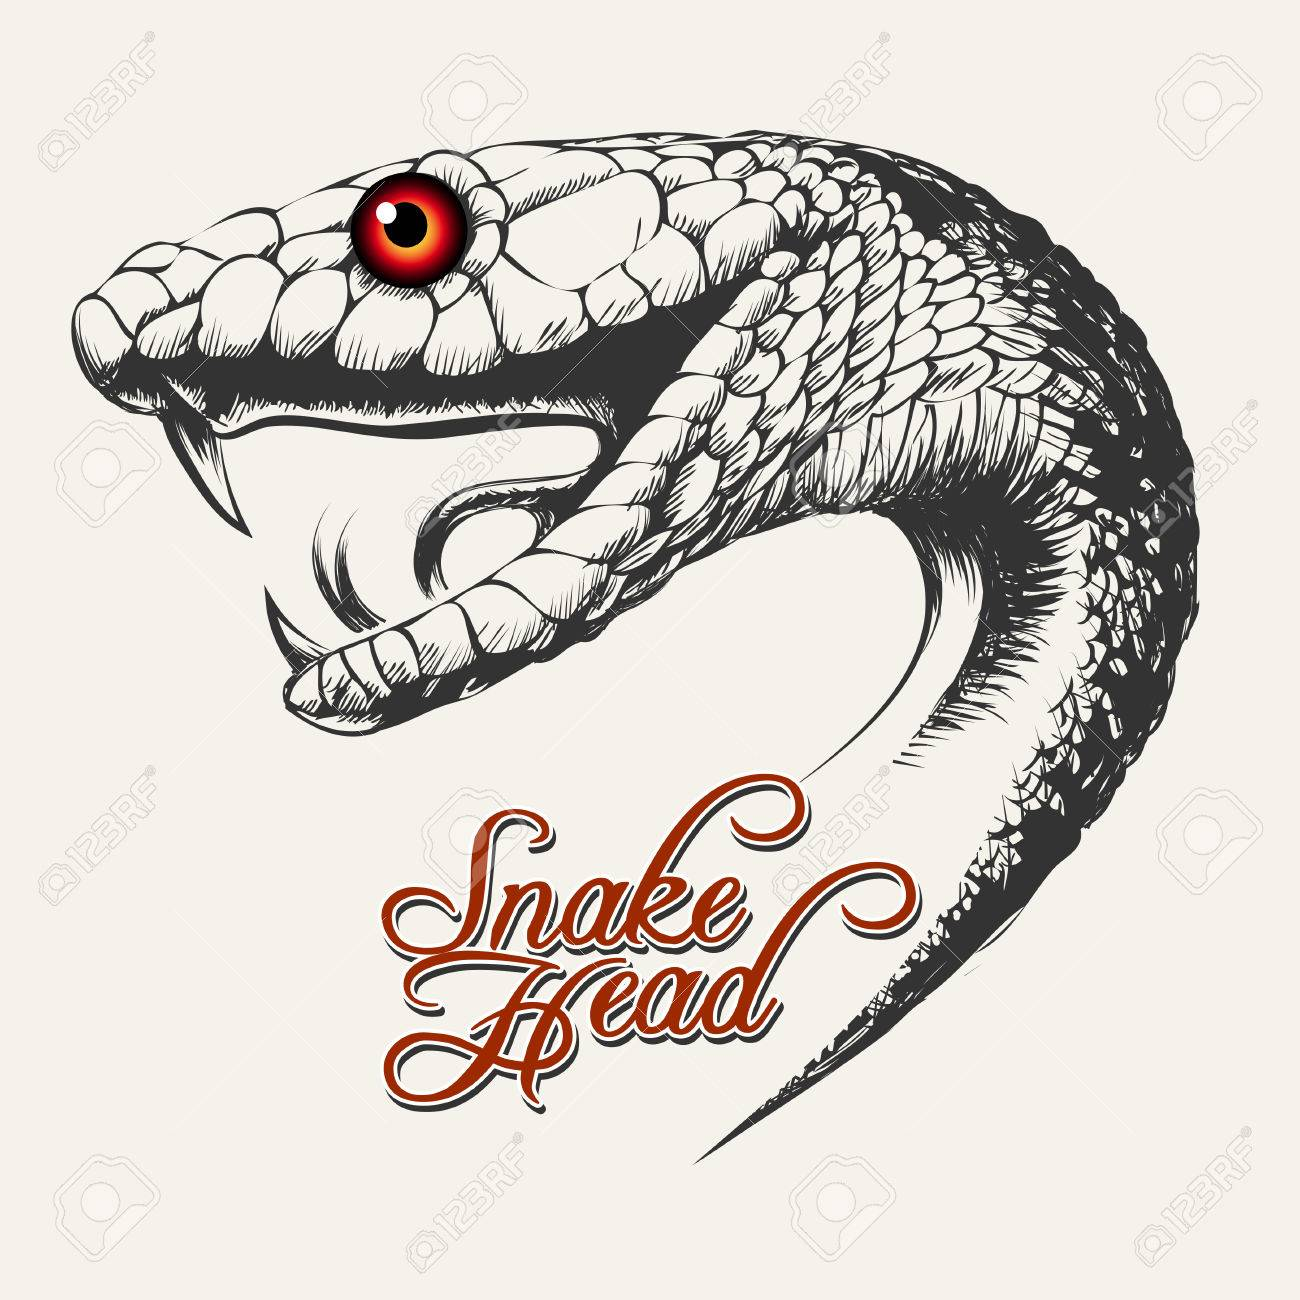 1300x1300 Snake Head Illustration Royalty Free Cliparts, Vectors, And Stock